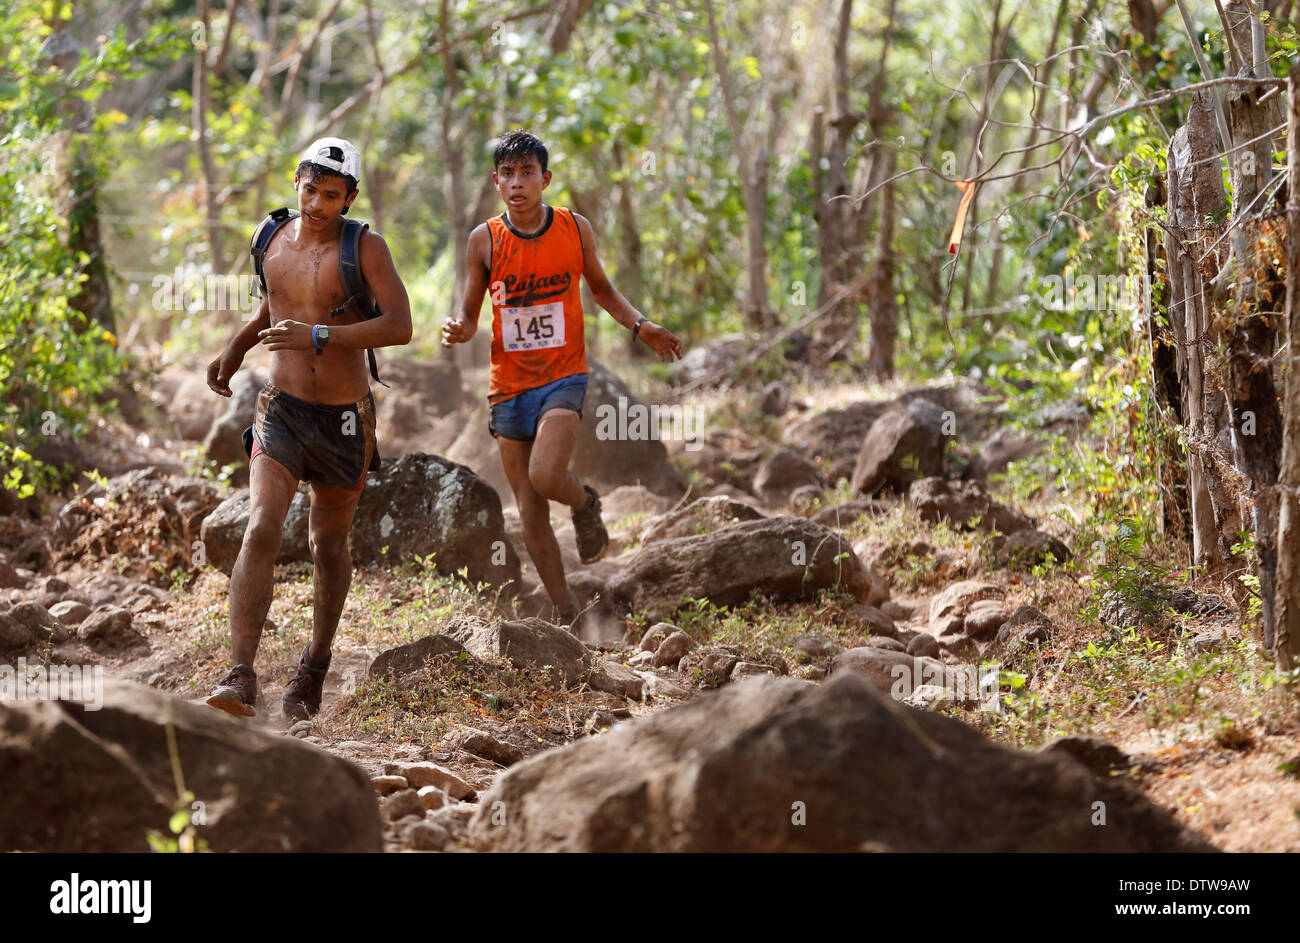 Extreme sports, runners in the 25k 'Fuego y Agua' race on Ometepe Island, Nicaragua - Stock Image